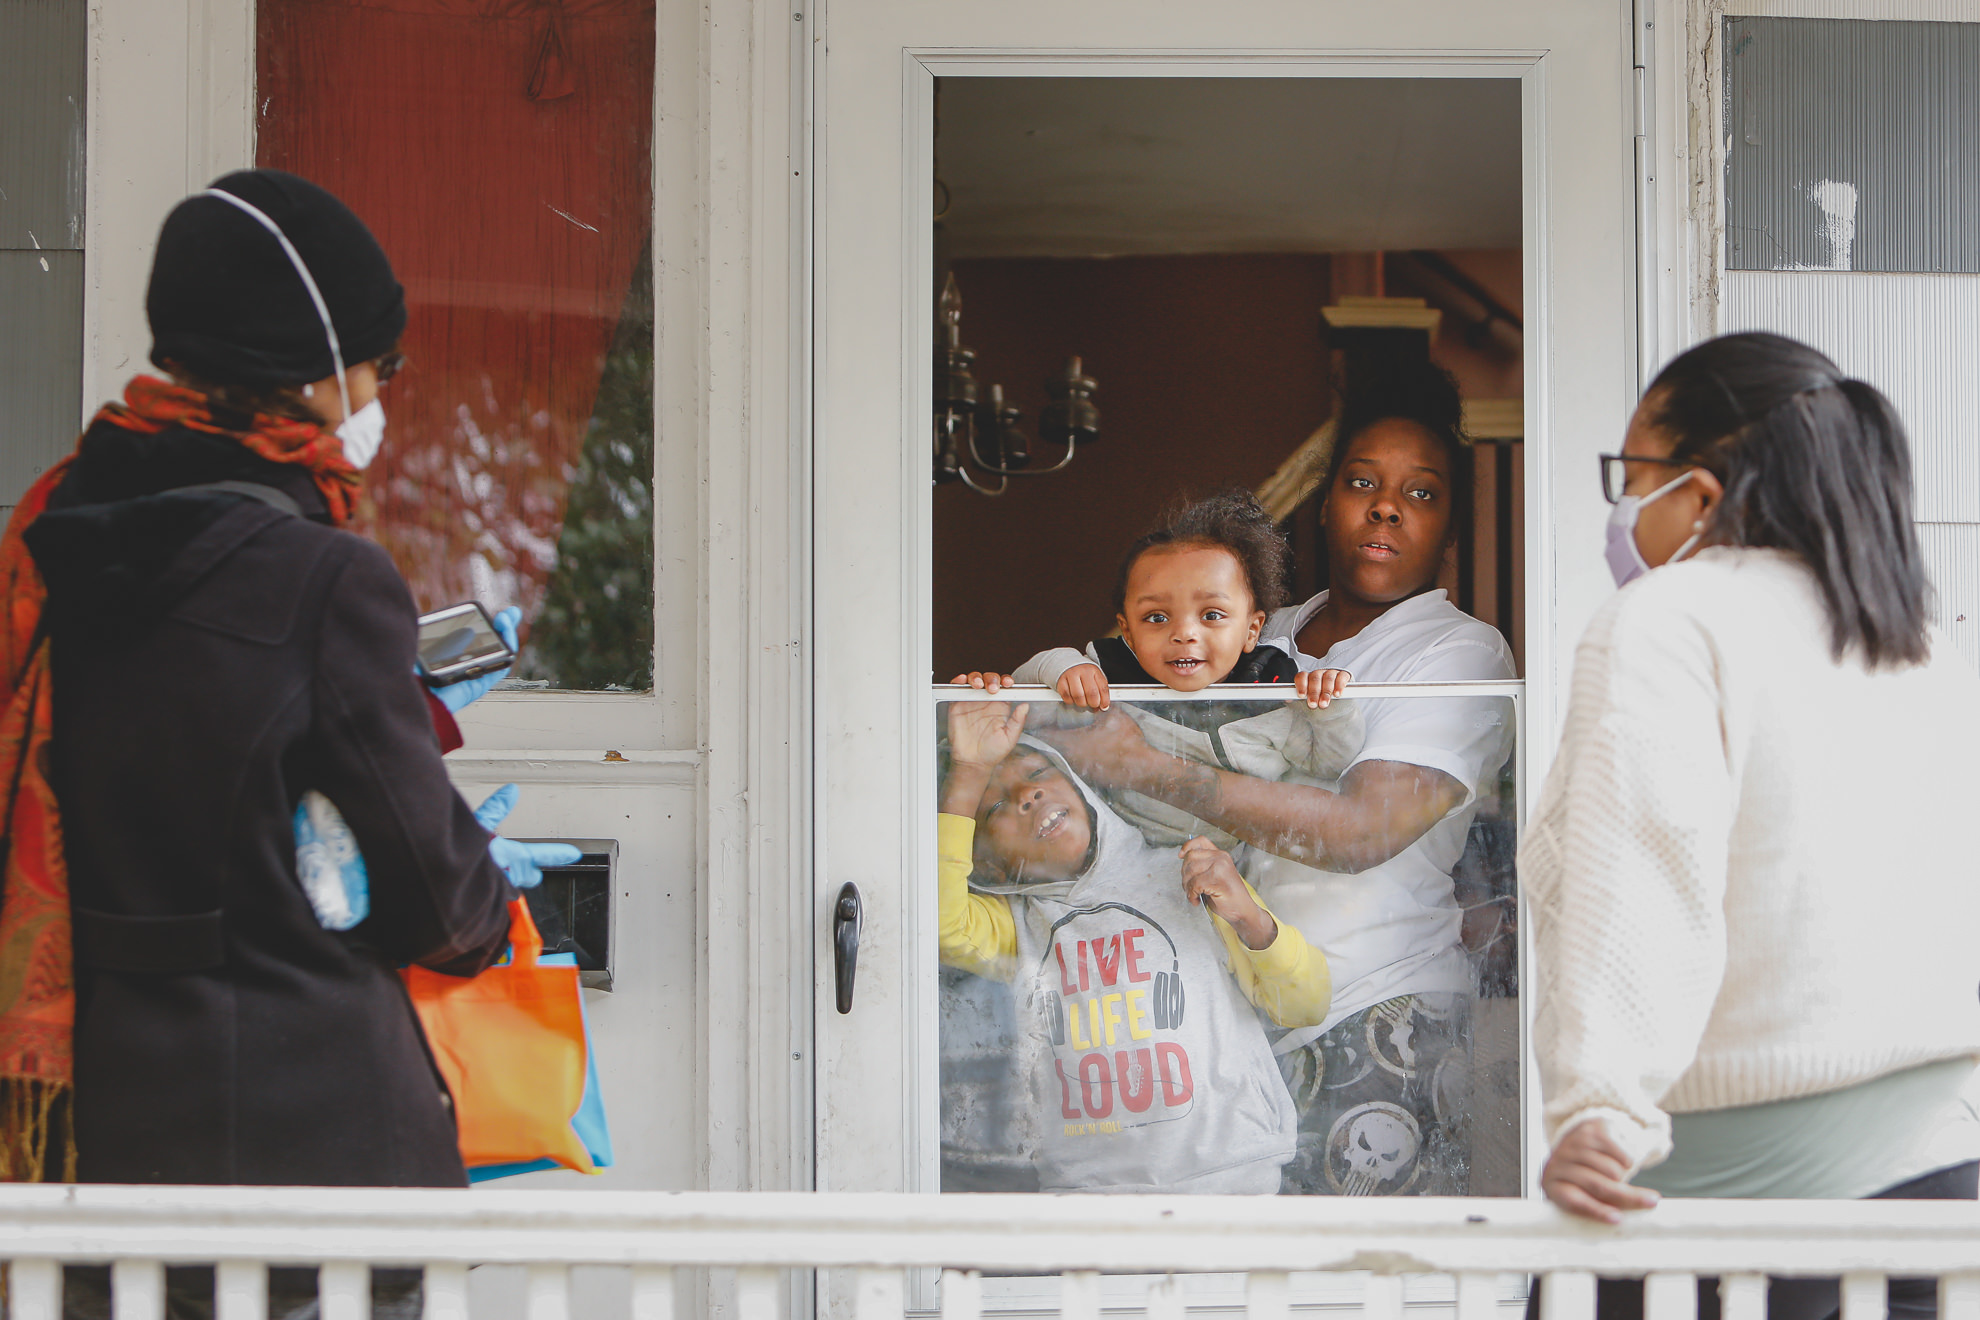 Sister Jenthia Abell and Dr. Angela Branche hand out coronavirus disease (COVID-19) survival kit to Natalie Hall as part of a door-to-door outreach program to the Black community to increase vaccine trial participation in Rochester, New York